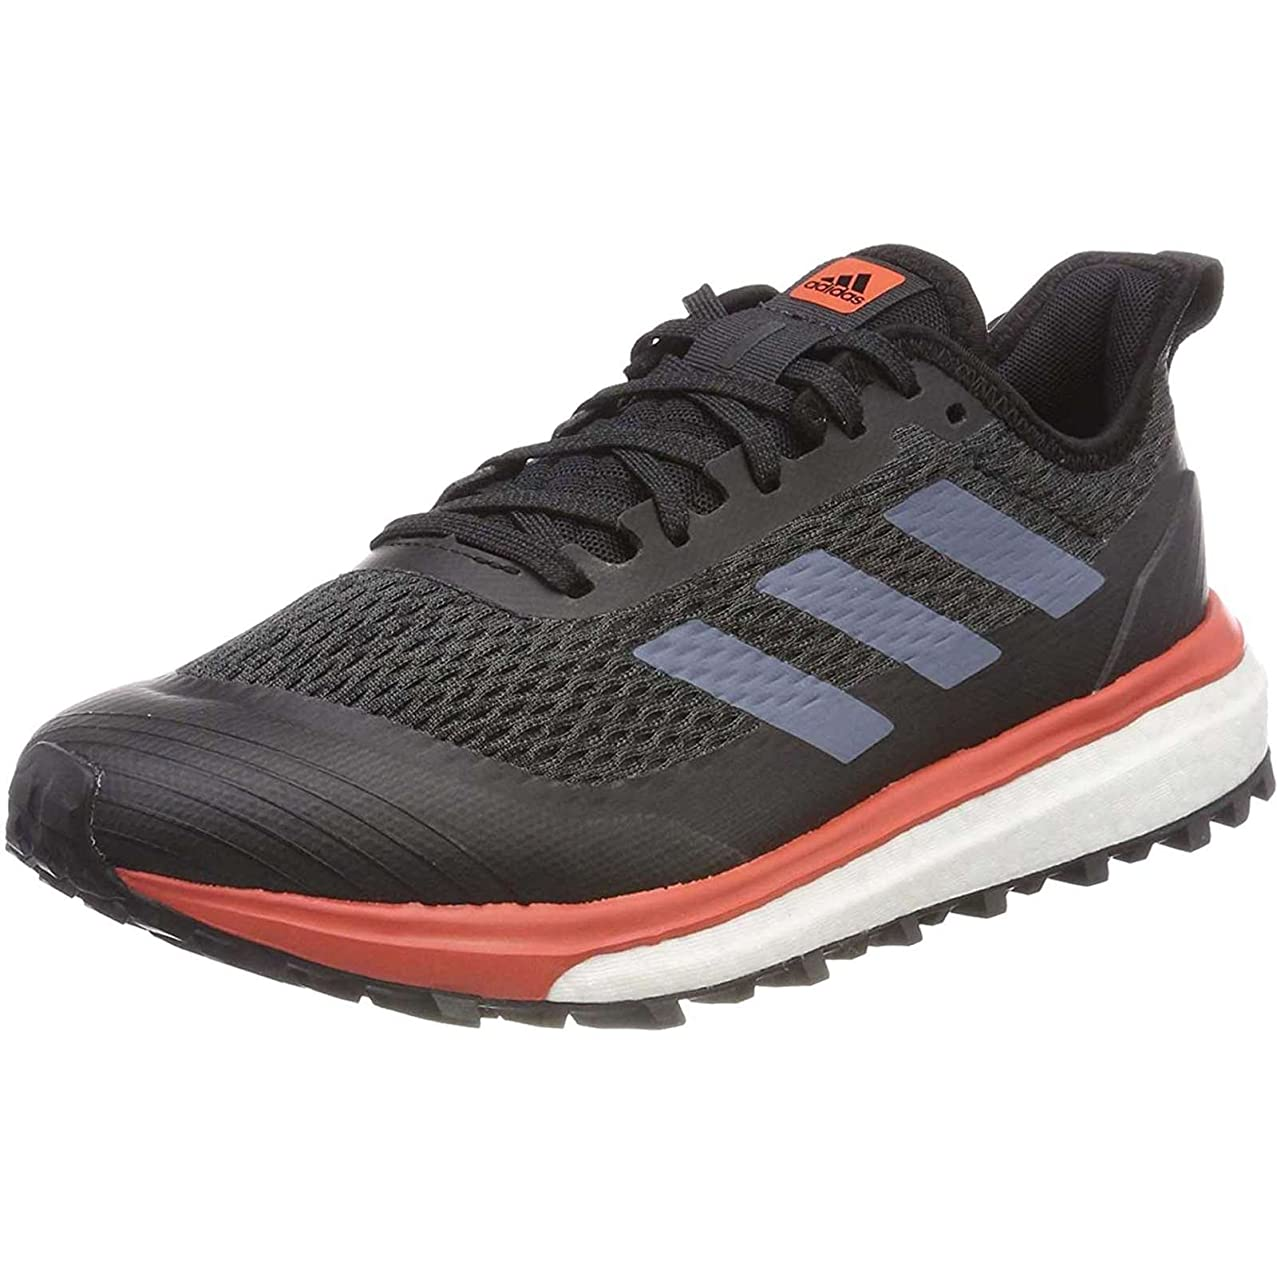 adidas Women's Response Trail Running Shoes